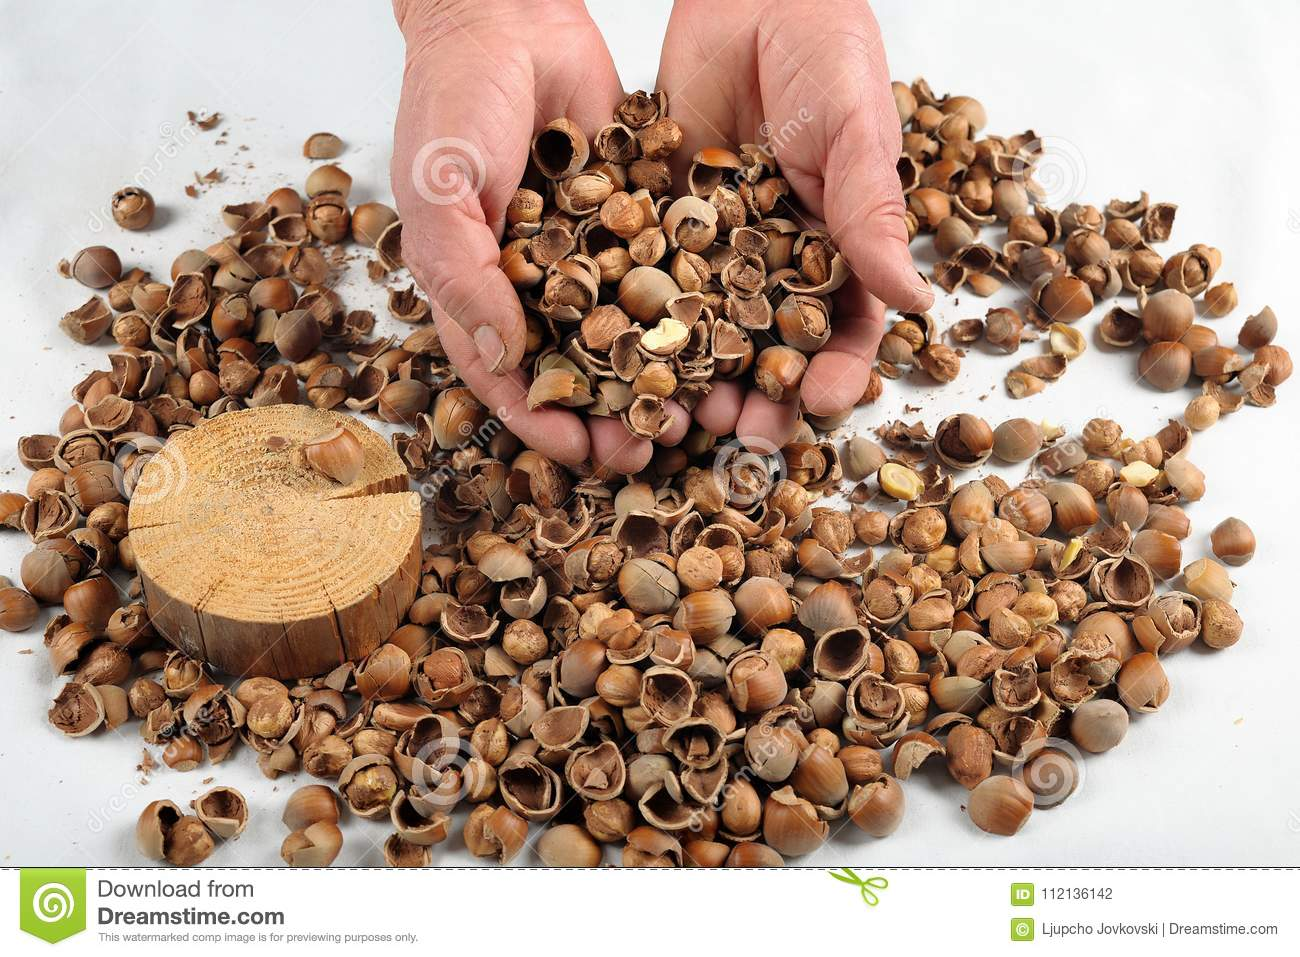 A Woman In Her Hands Cracked Hazelnut Stock Photo - Image of